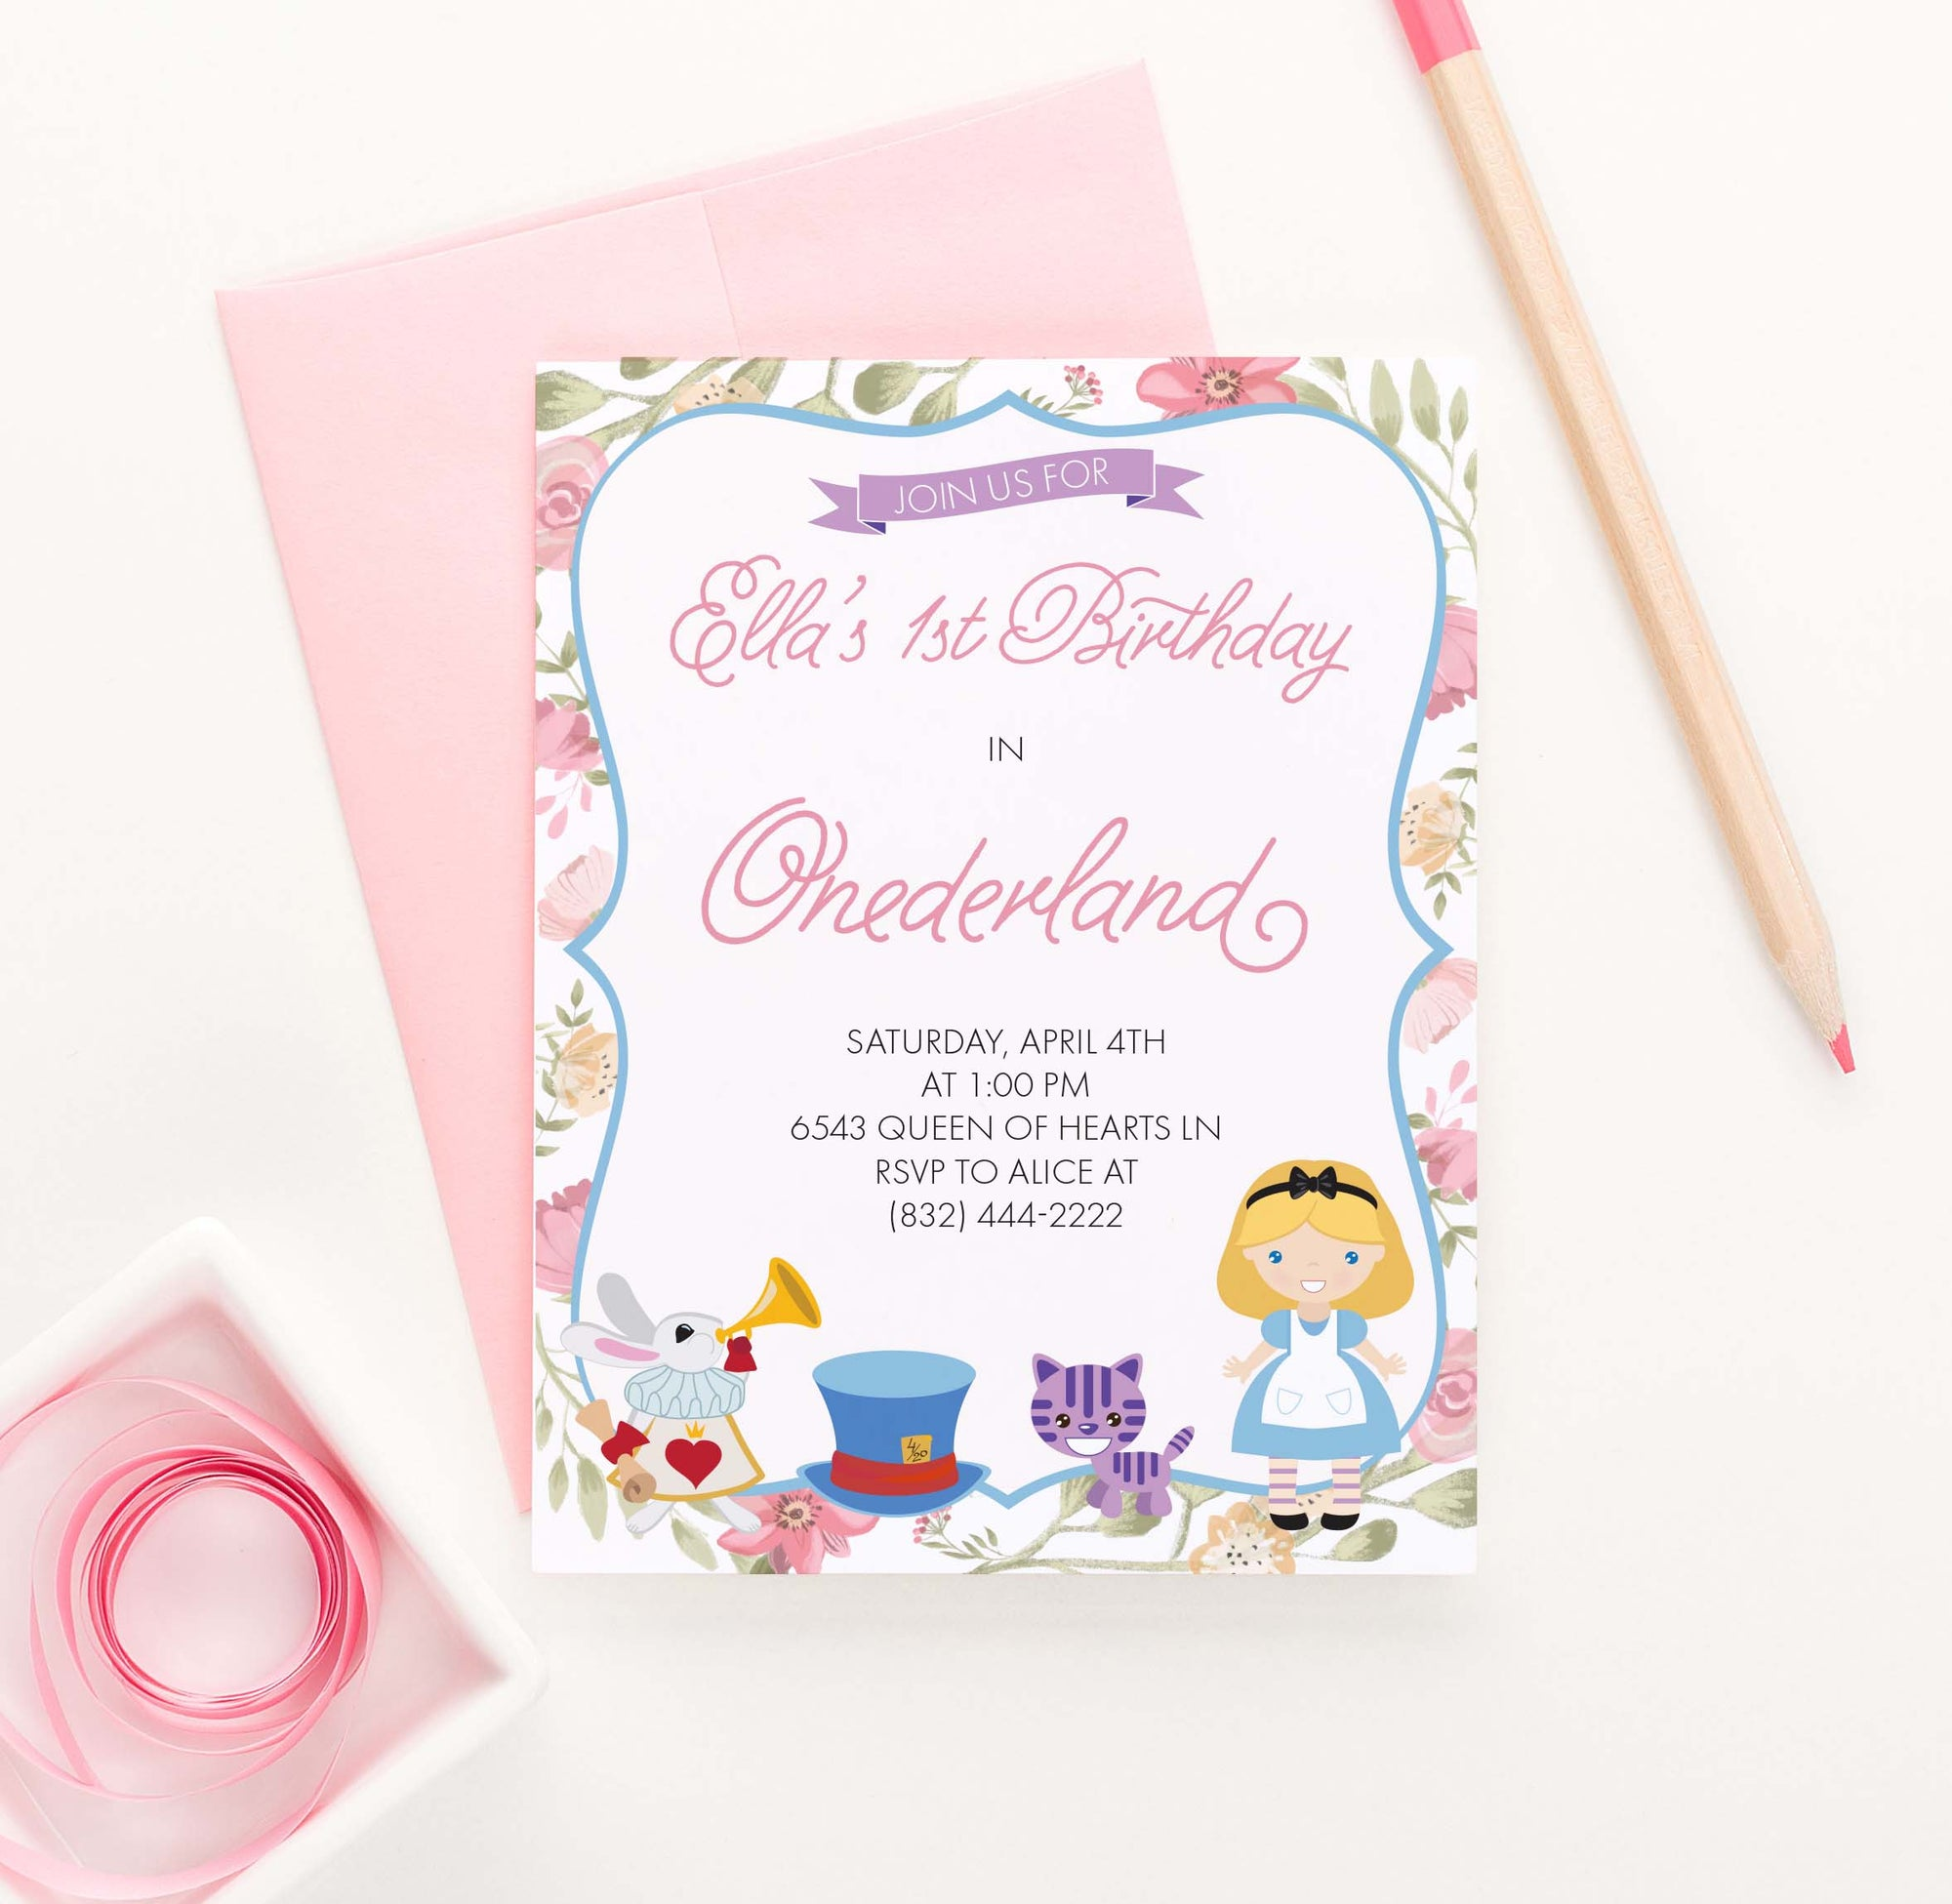 BI043 onederland birthday party invites for girls alice cat tophat